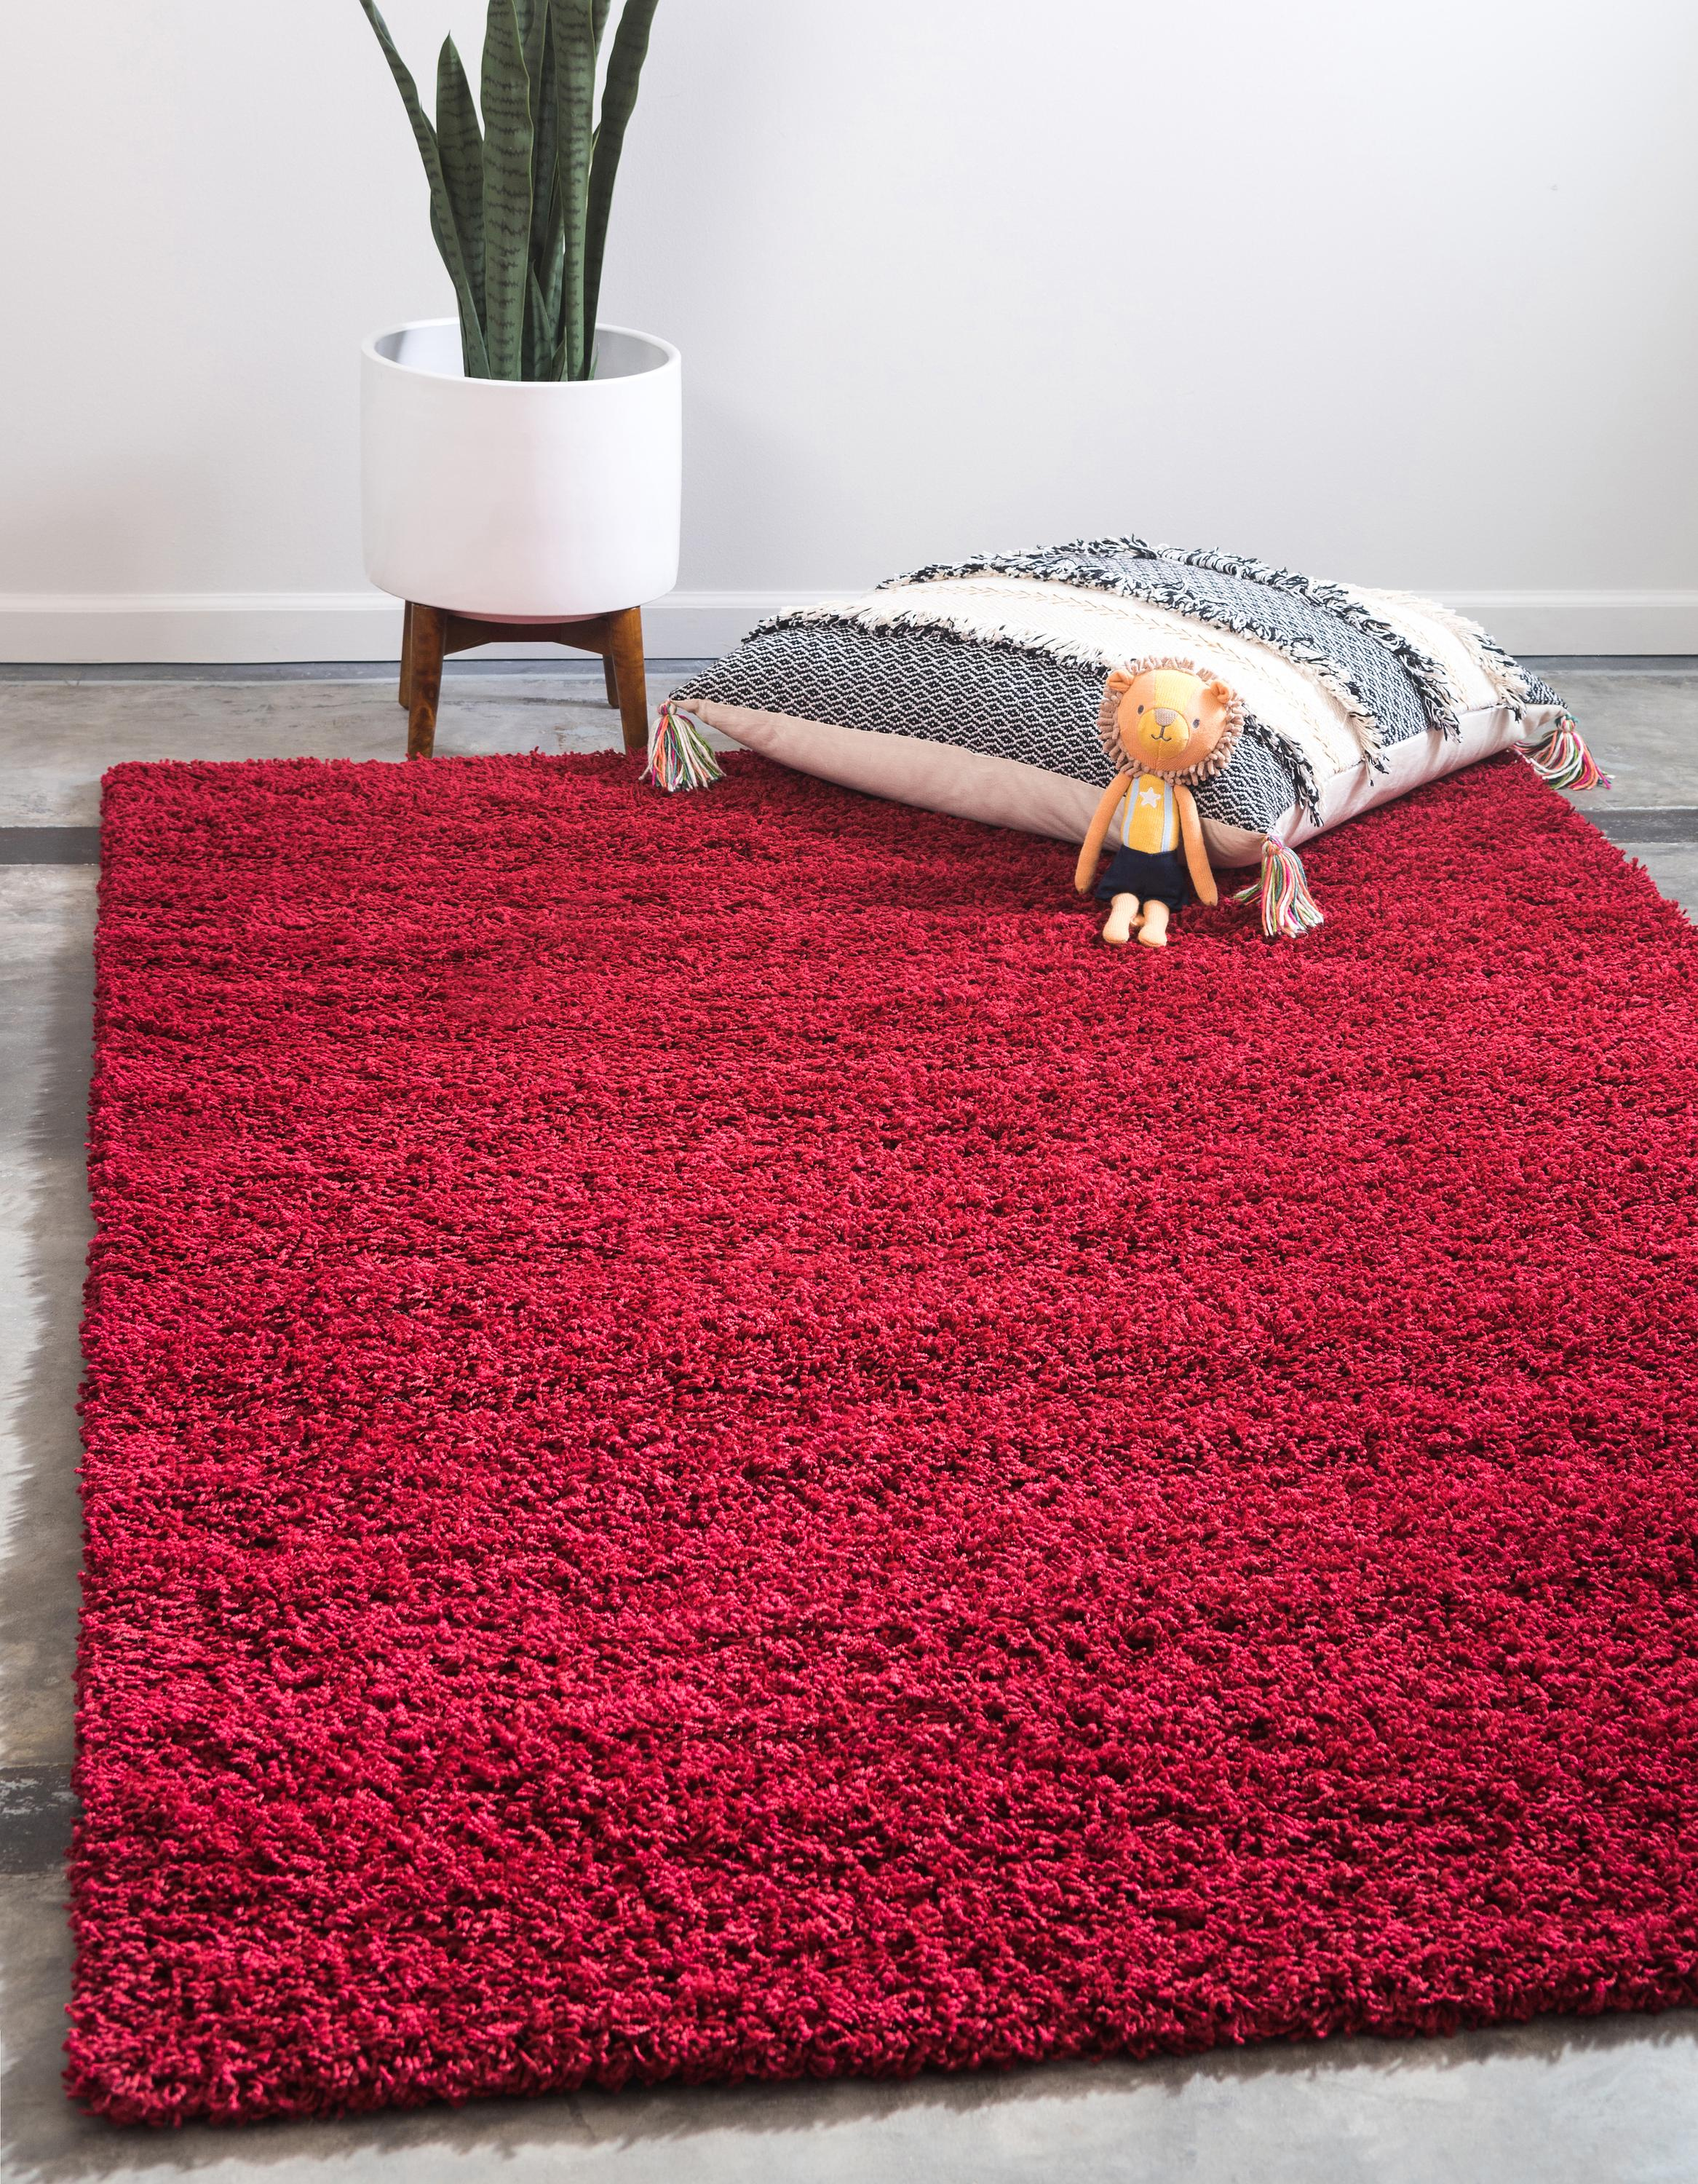 Cherry Red 4' X 6' Solid Shag Rug